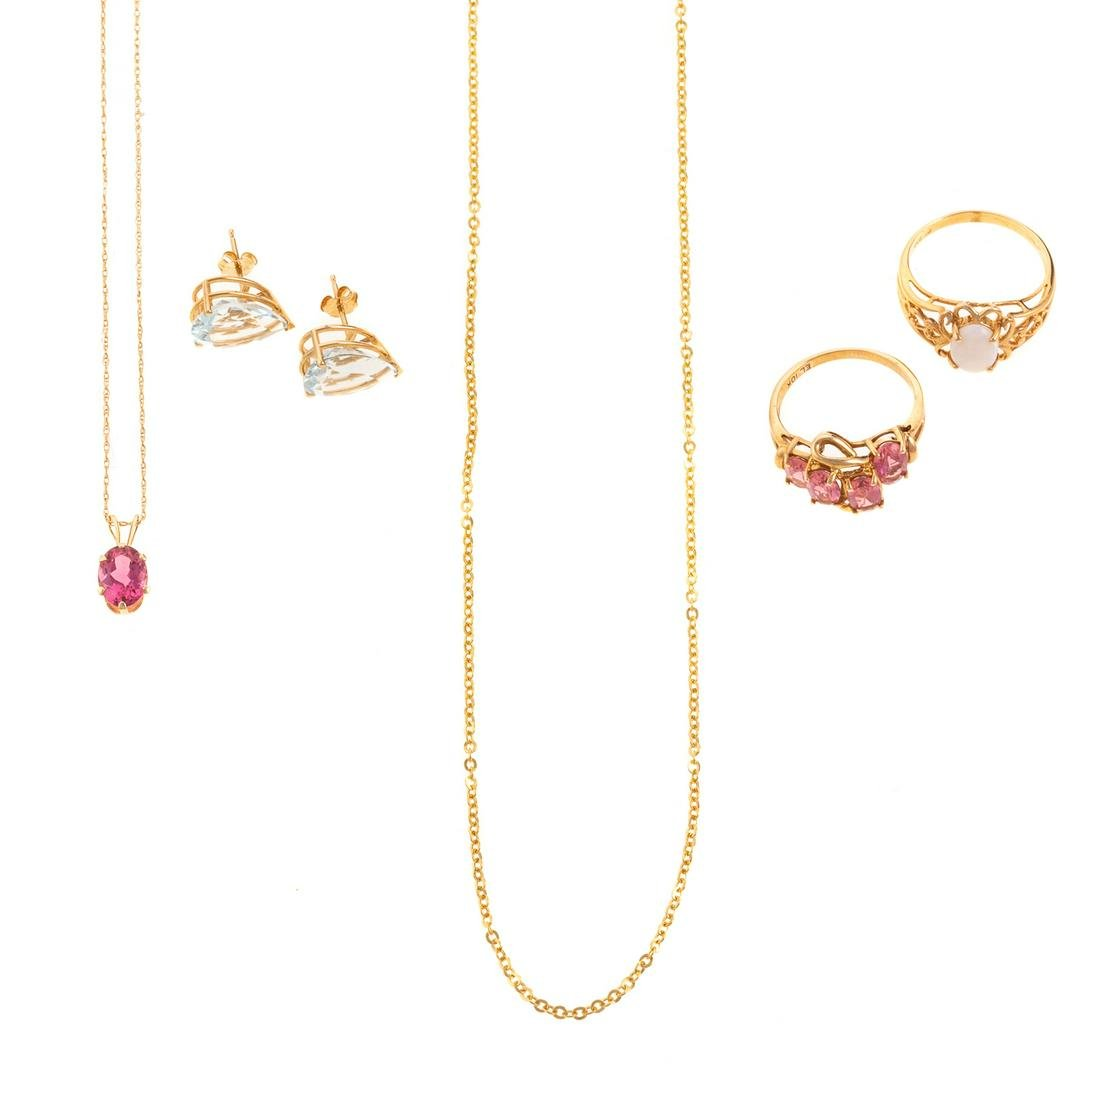 A Collection of Gold & Gemstone Jewelry in 14K & 10K